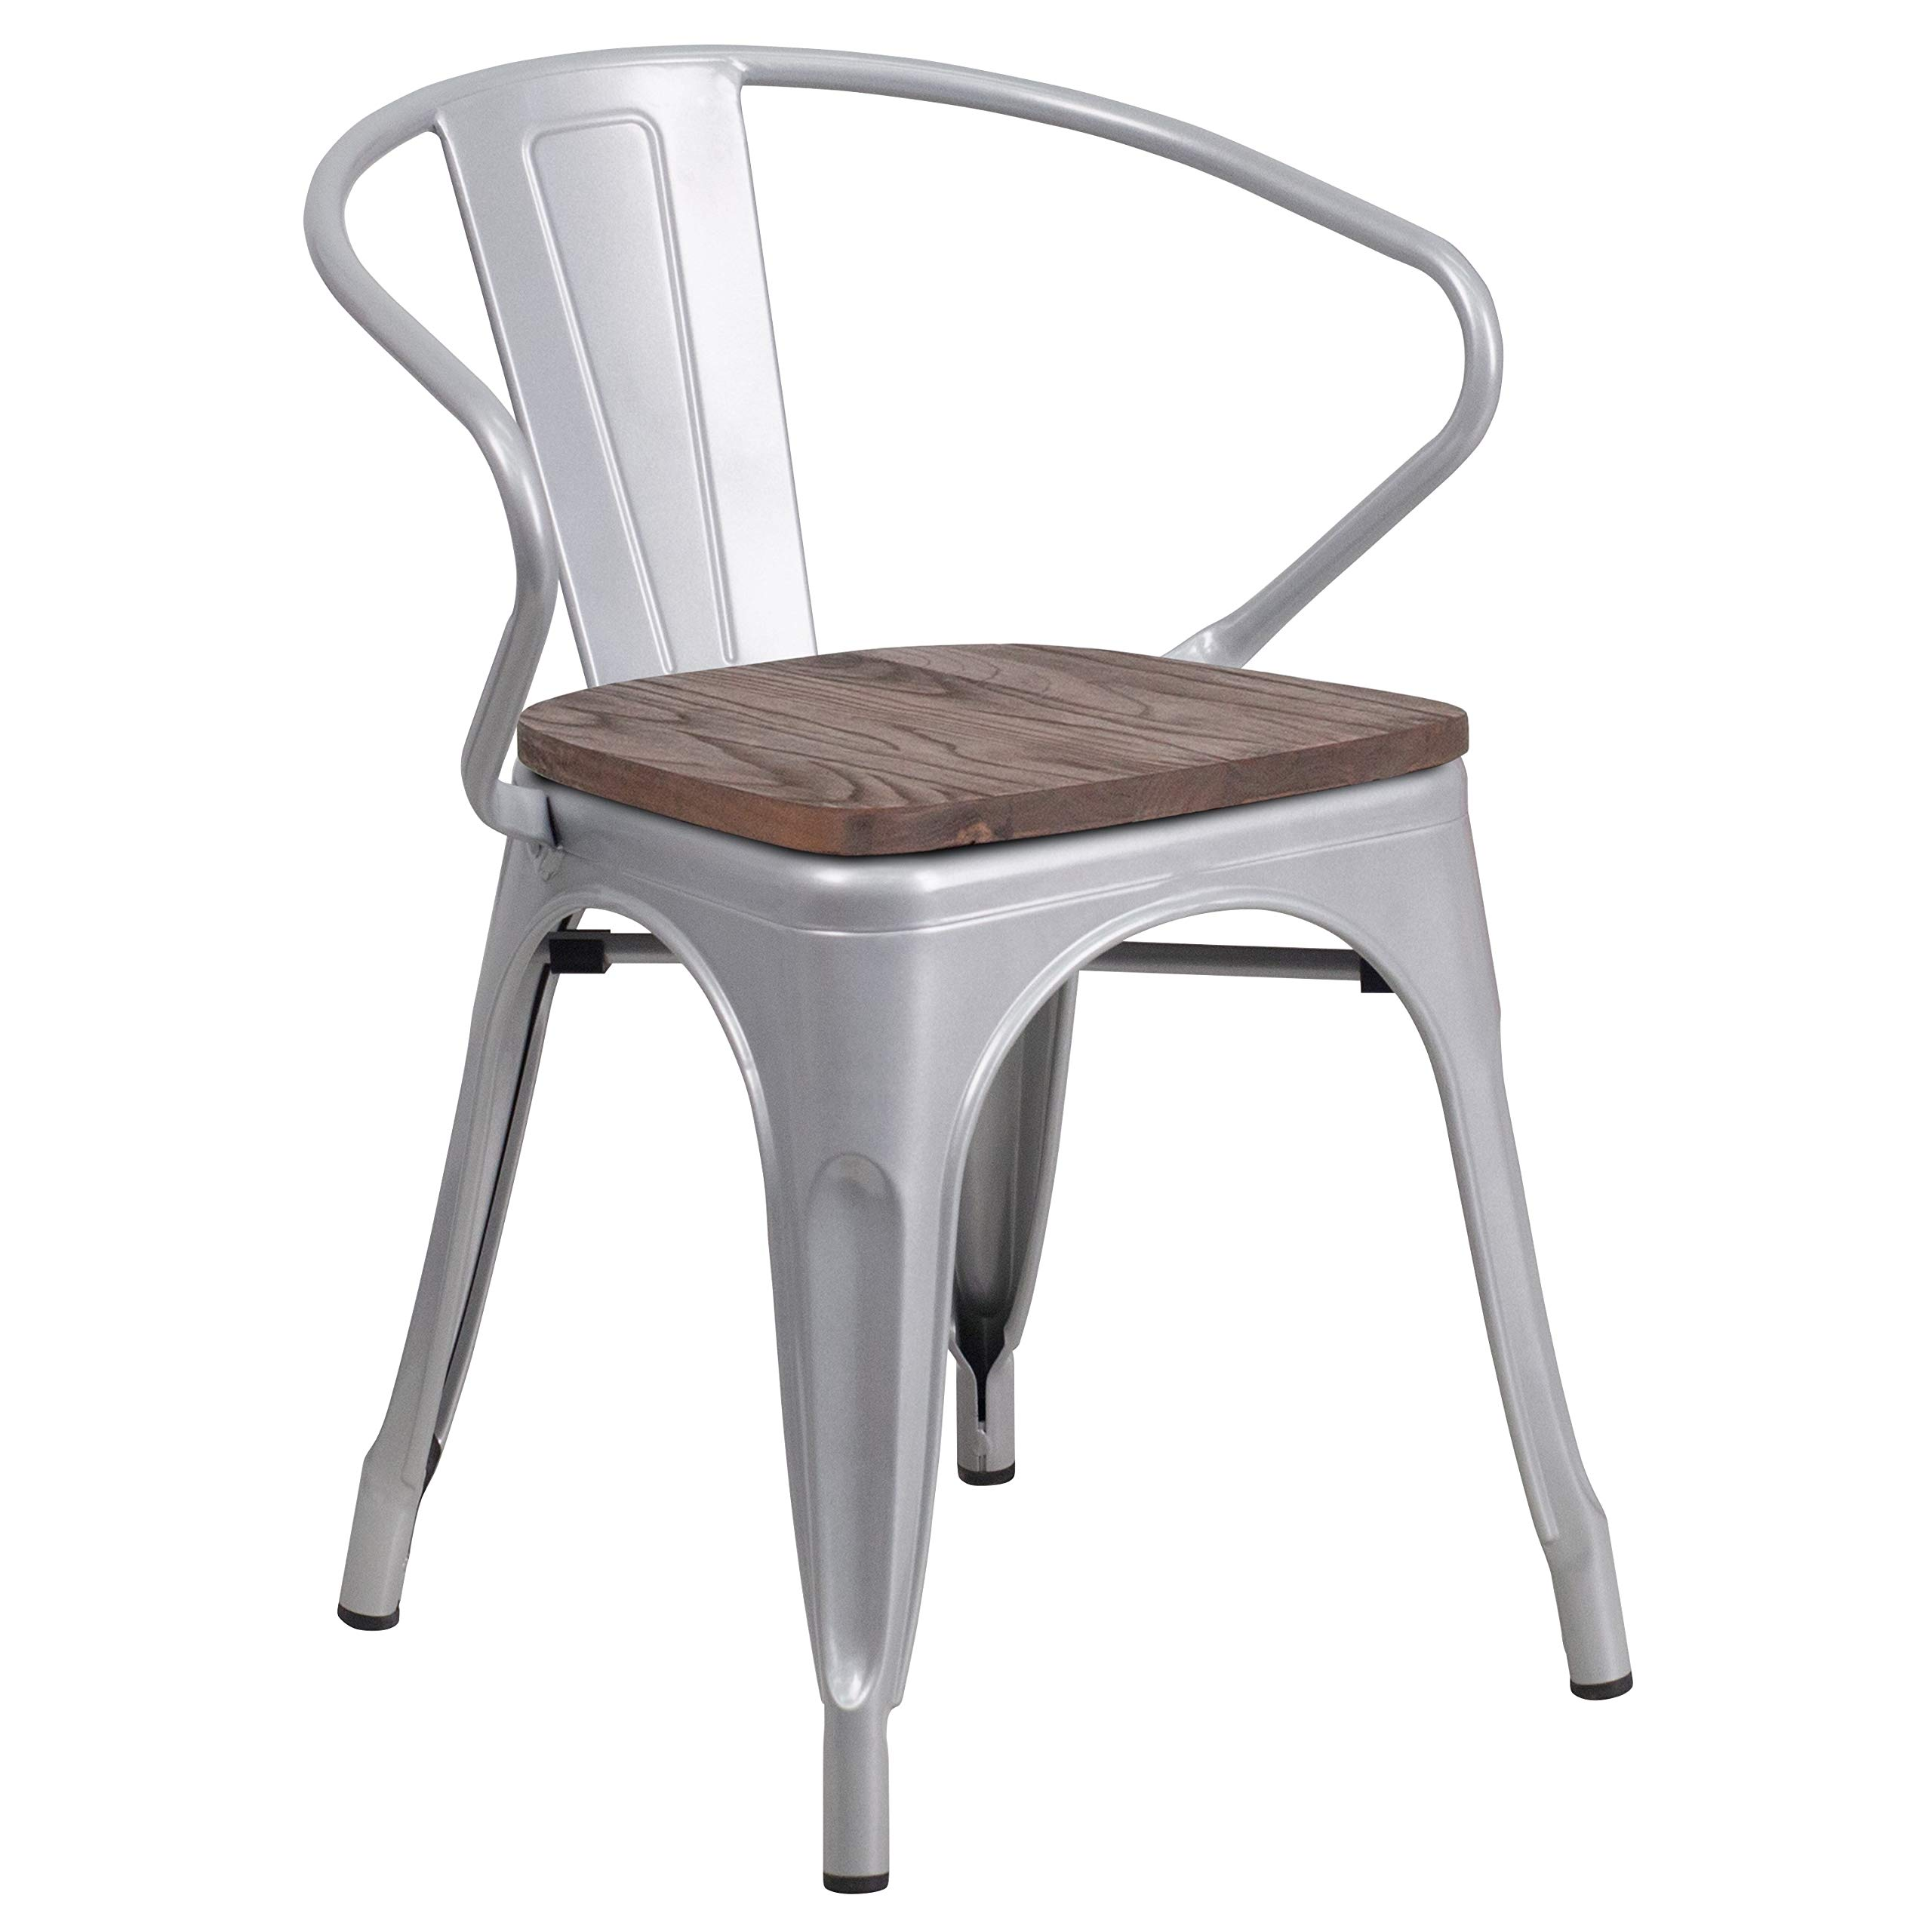 MFO Silver Metal Chair with Wood Seat and Arms by My Friendly Office